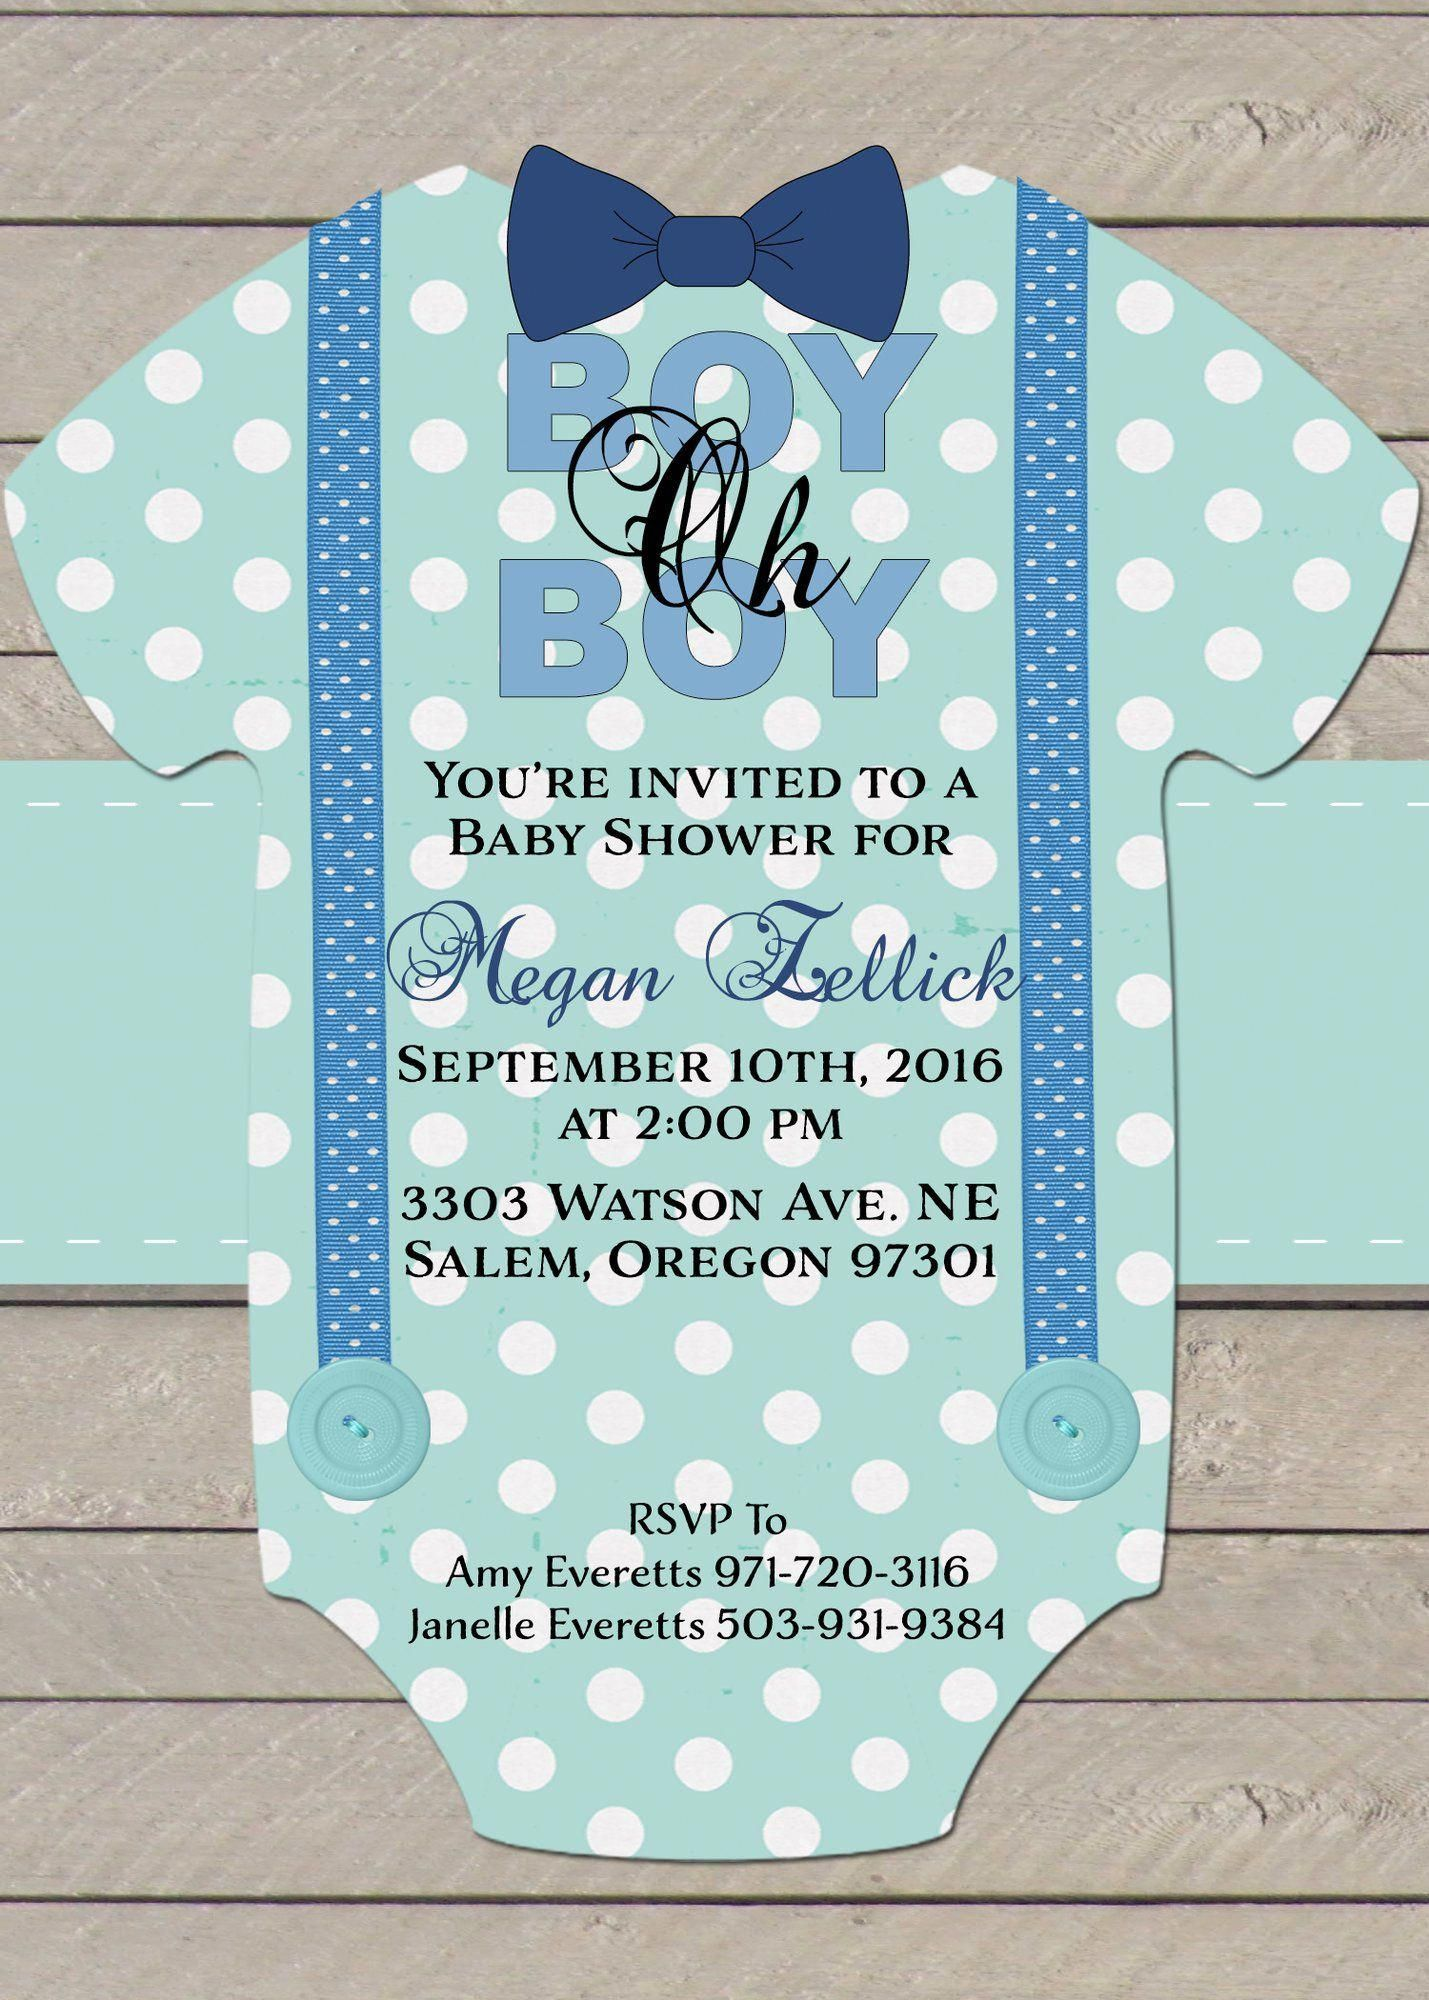 Boy Oh Boy Baby Shower Invitation Baby Shower Invitations For Boys Gold Baby Shower Invitations Baby Shower Invitations